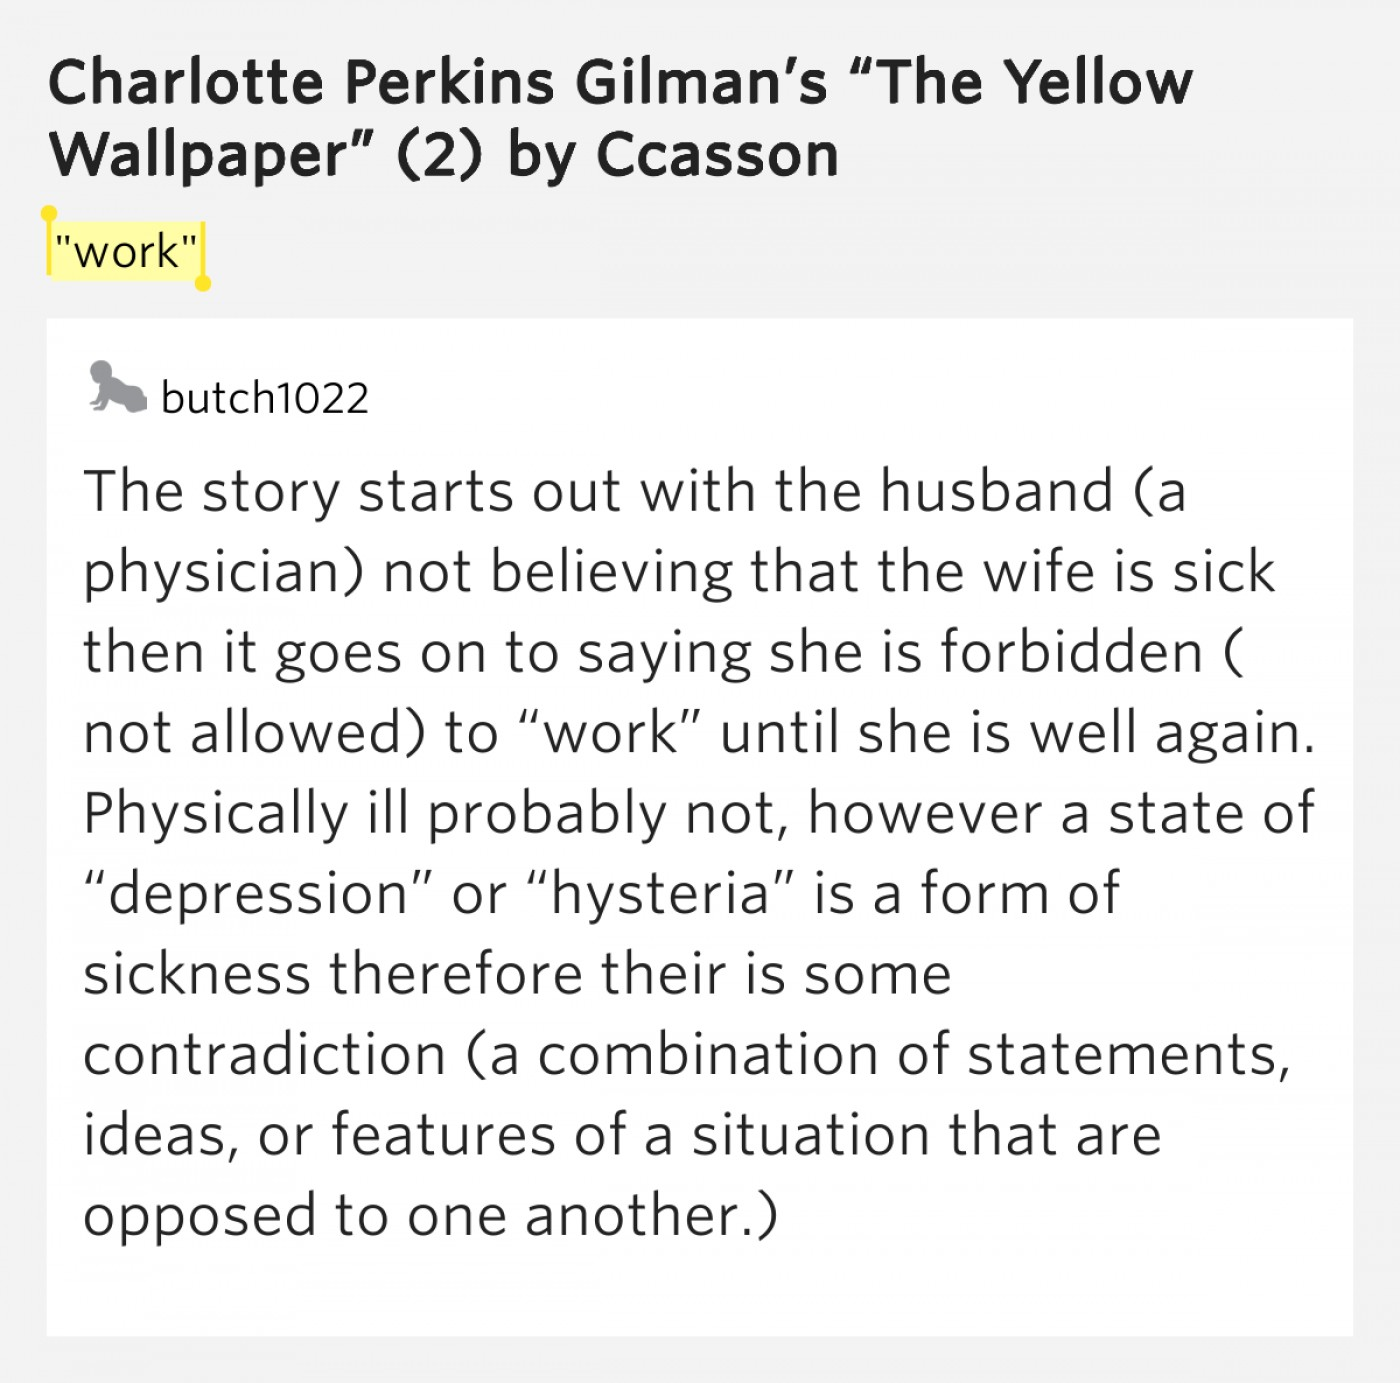 006 The Yellow Wallpaper Essay Example Top Feminism Questions Conclusion 1400